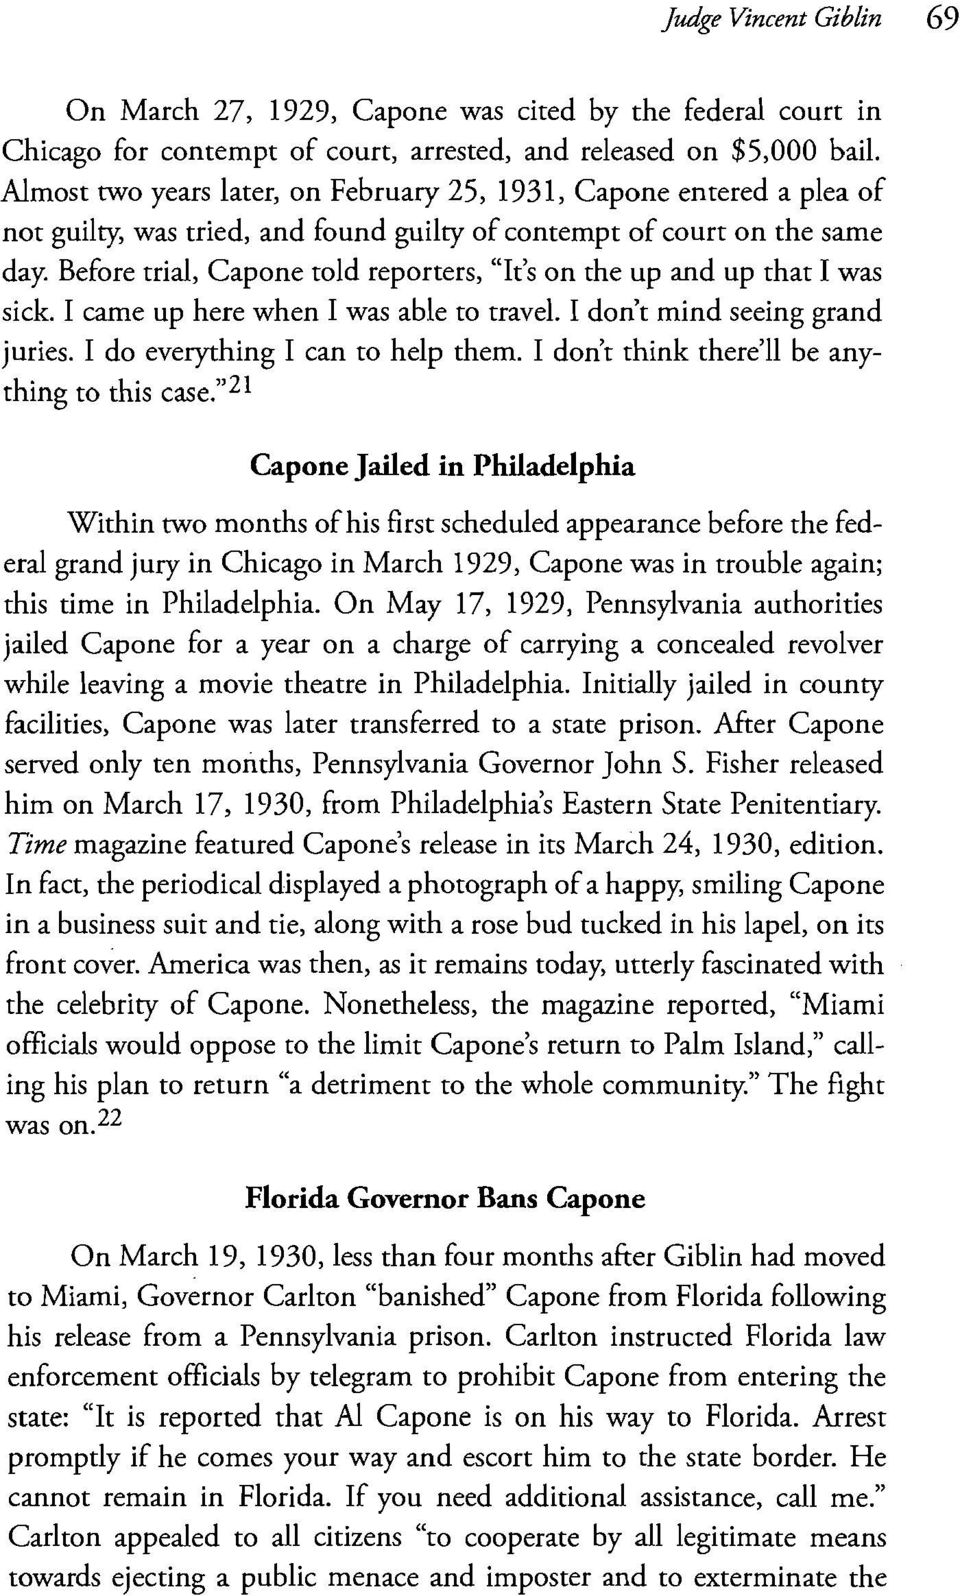 "Before trial, Capone told reporters, ""It's on the up and up that I was sick. I came up here when I was able to travel. I don't mind seeing grand juries. I do everything I can to help them."